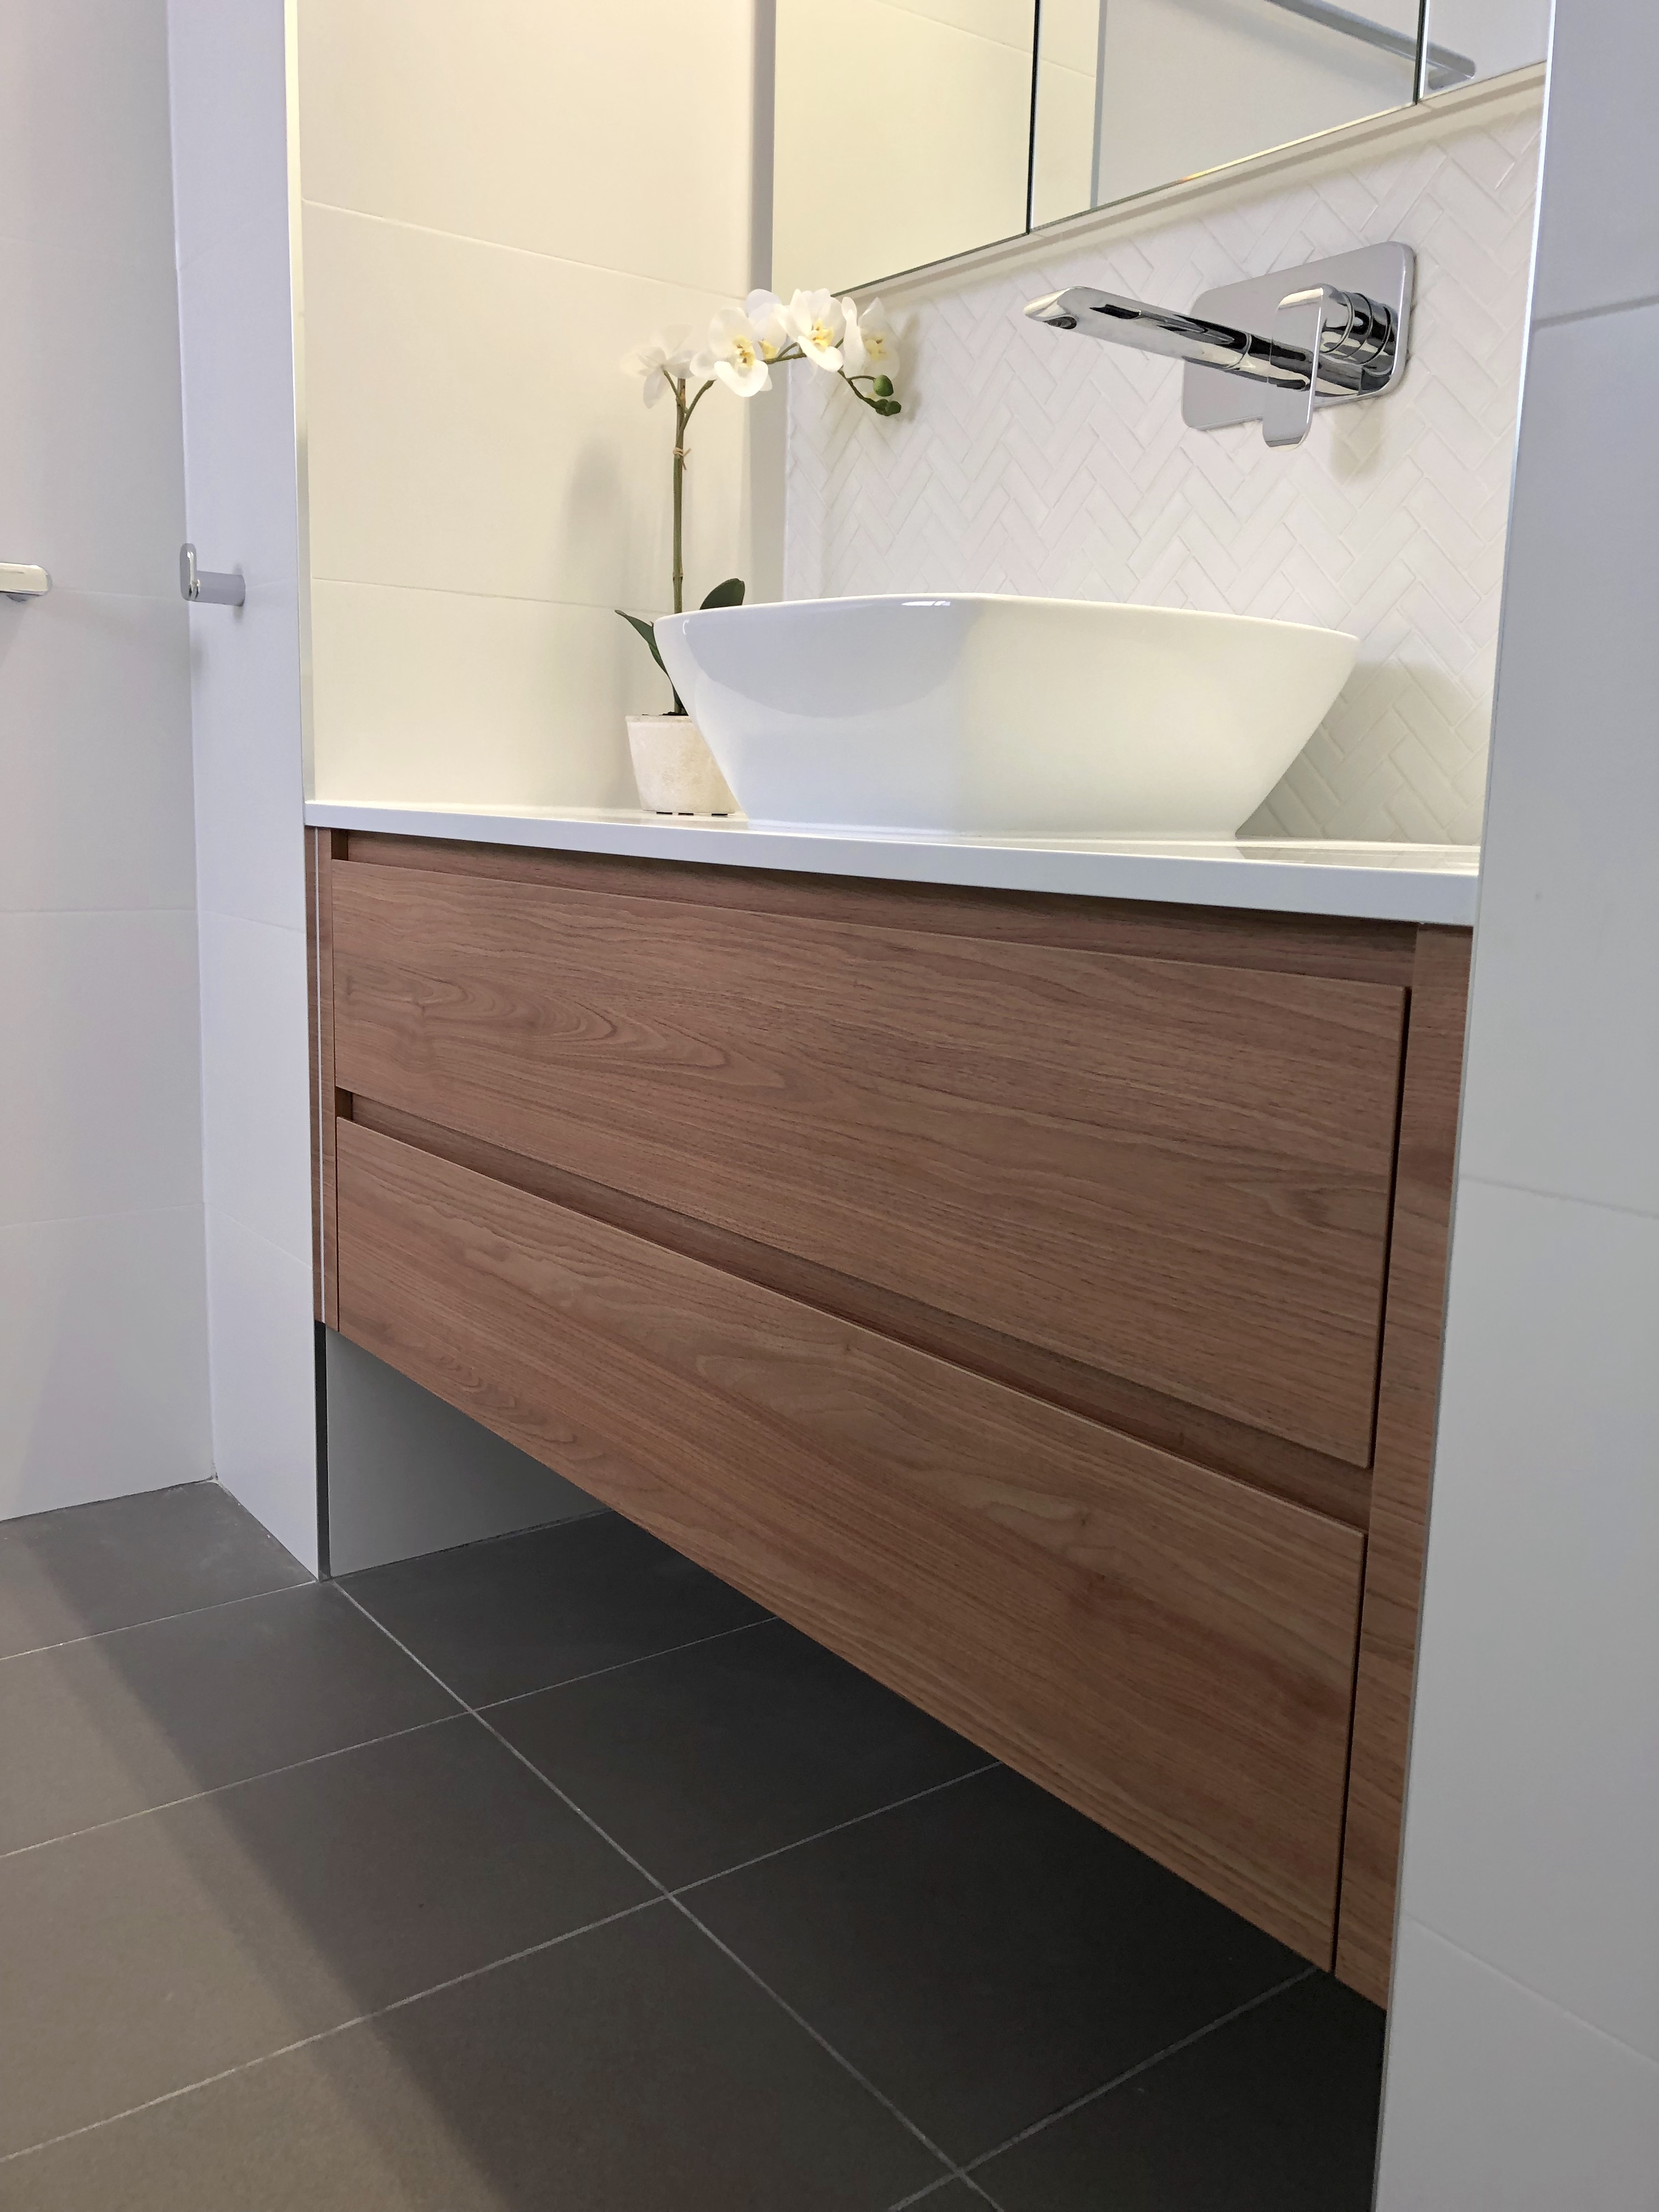 Gorgeous custom made vanity & shaving cabinet with wall mounted tap, above counter bowl & herringbone tile splashback - bathroom renovation by Master Bathrooms & Kitchens